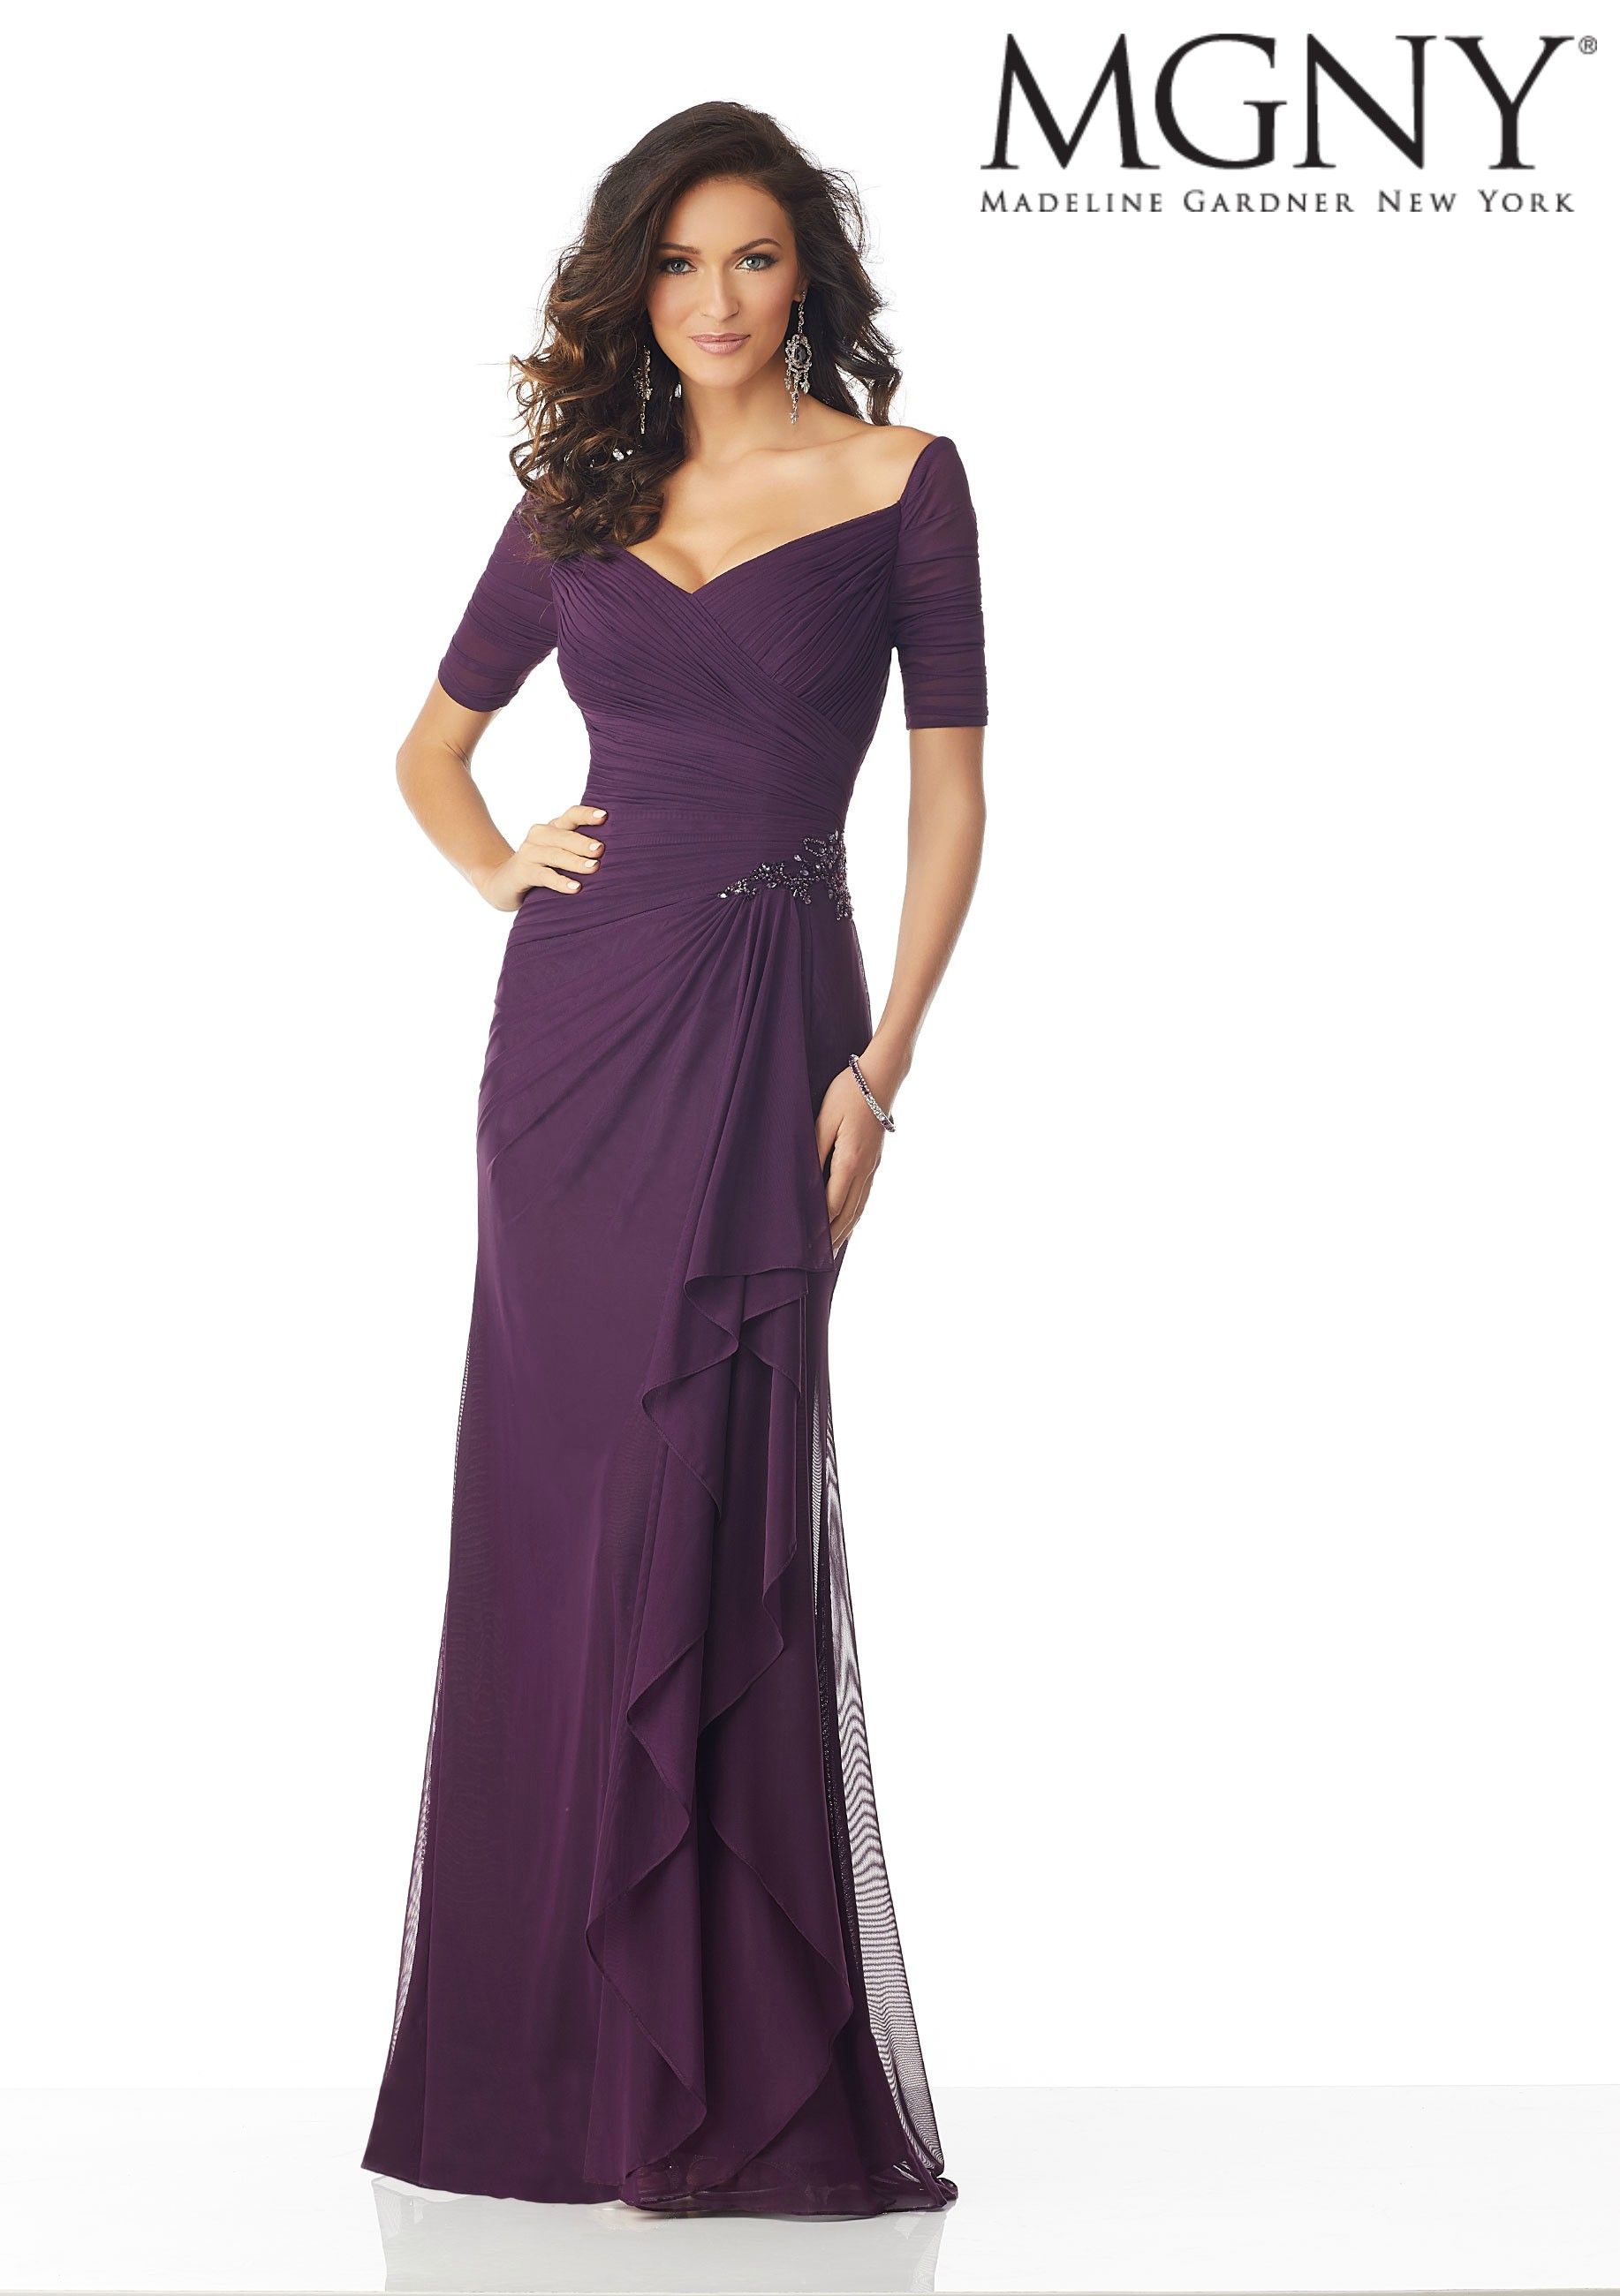 81c2b5634a6 Stretch Mesh Evening Gown with Draping and Beading in 2019